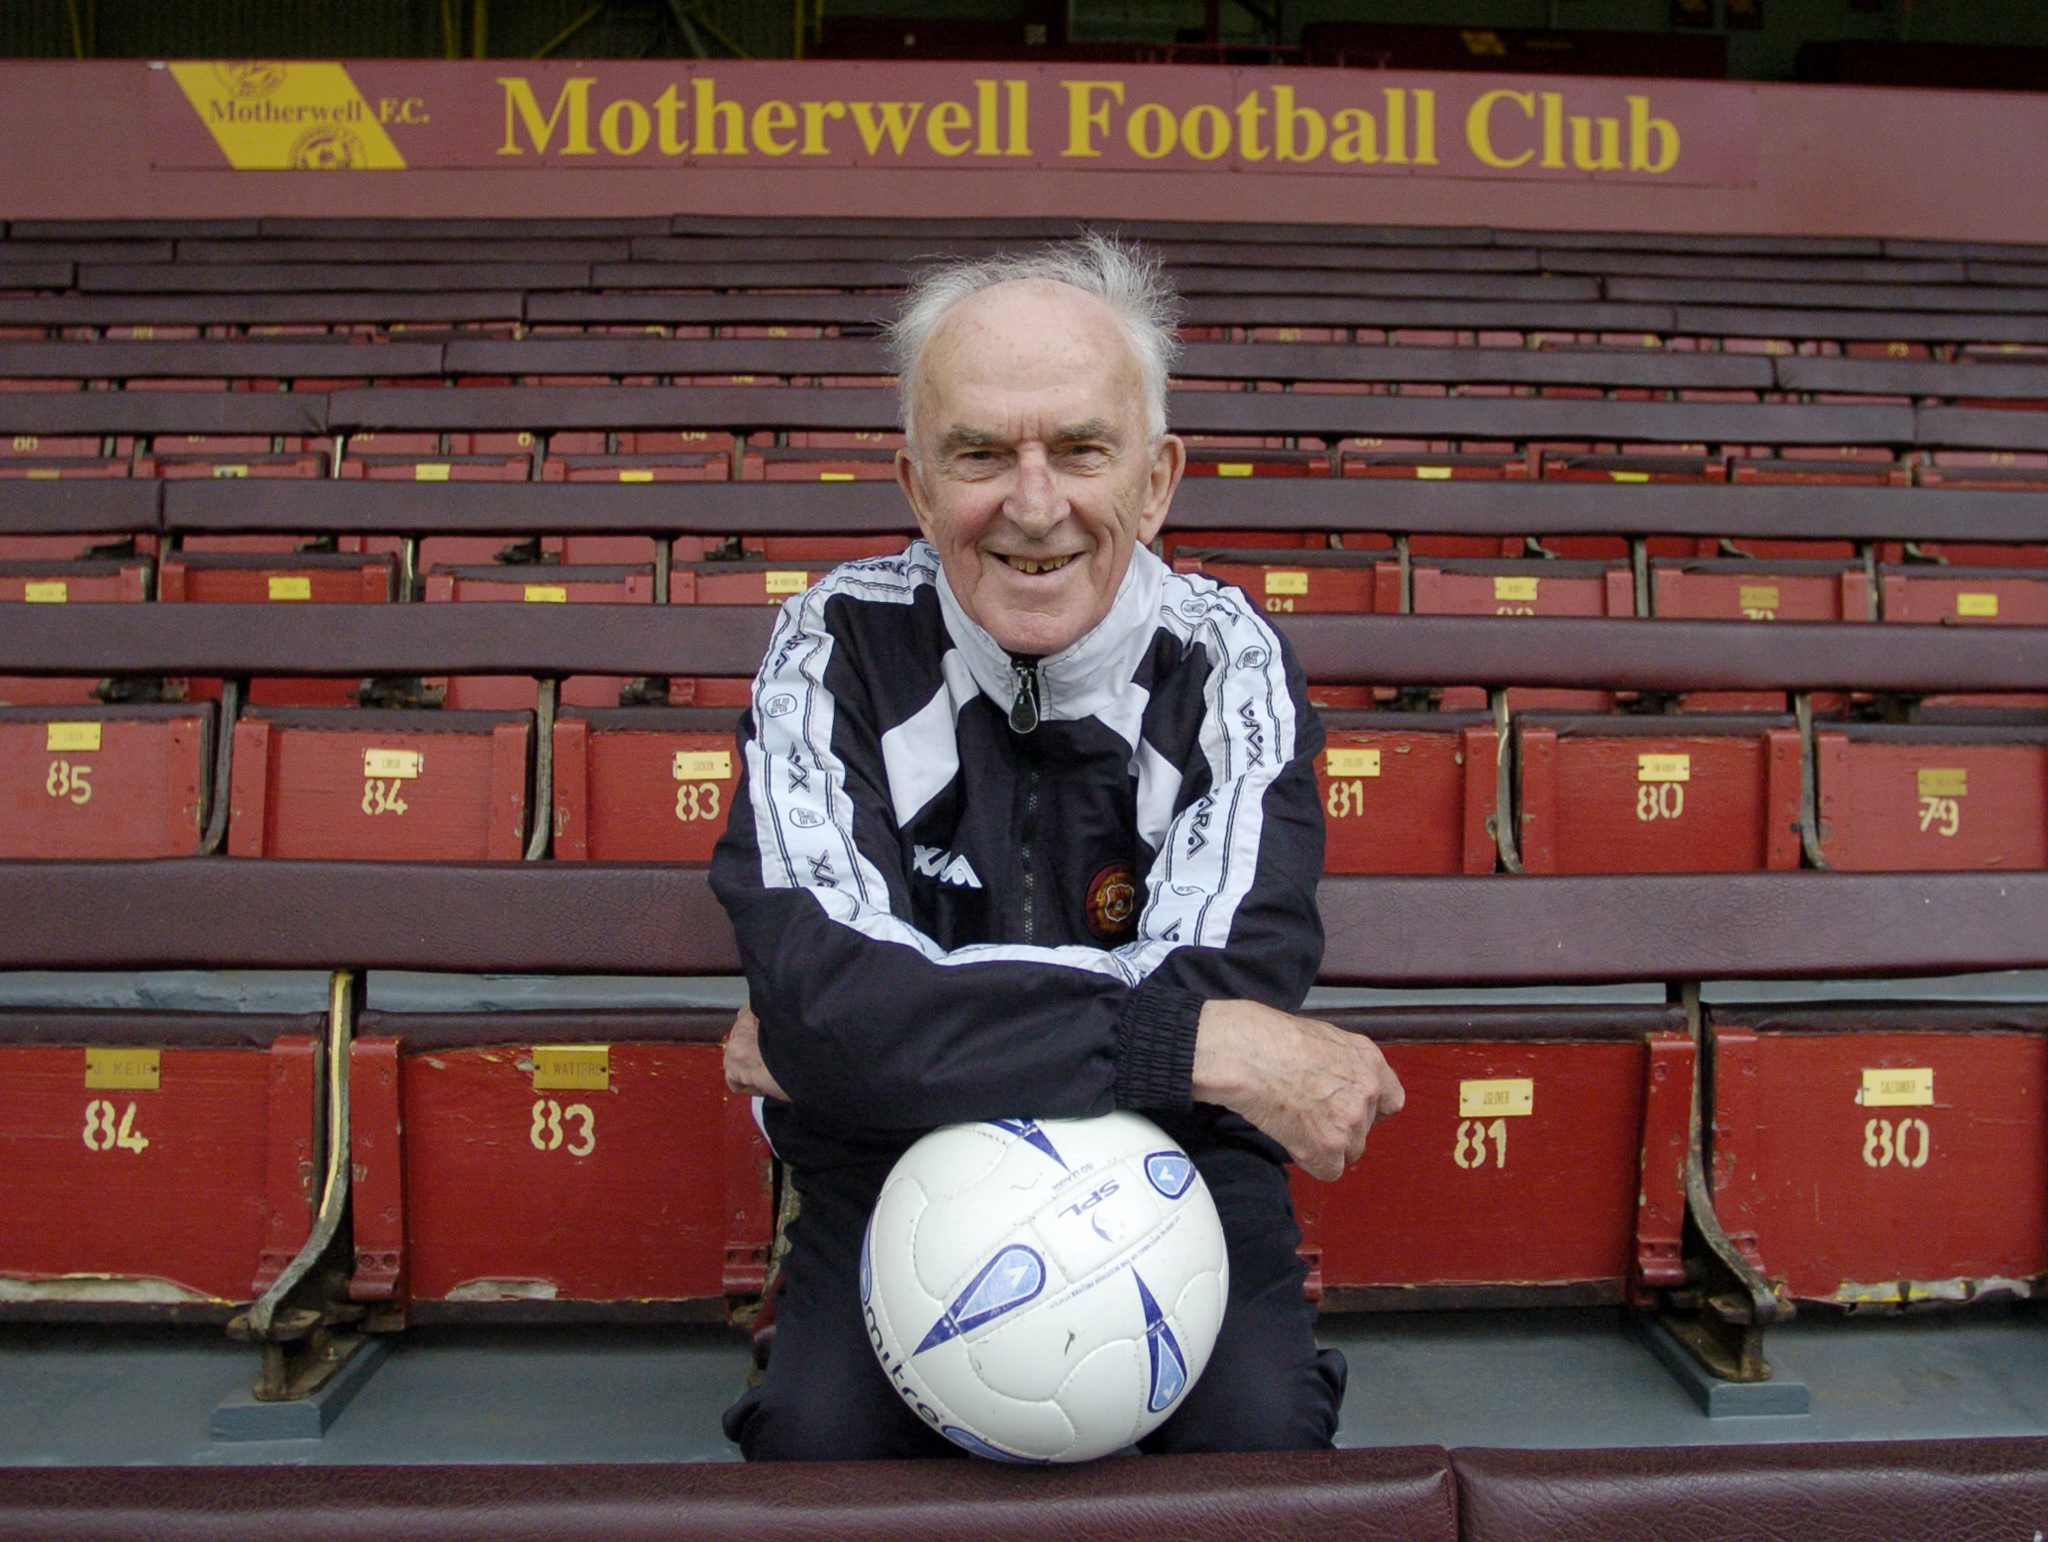 Obituary: James Martin, long-serving minister and chaplain to Motherwell Football Club